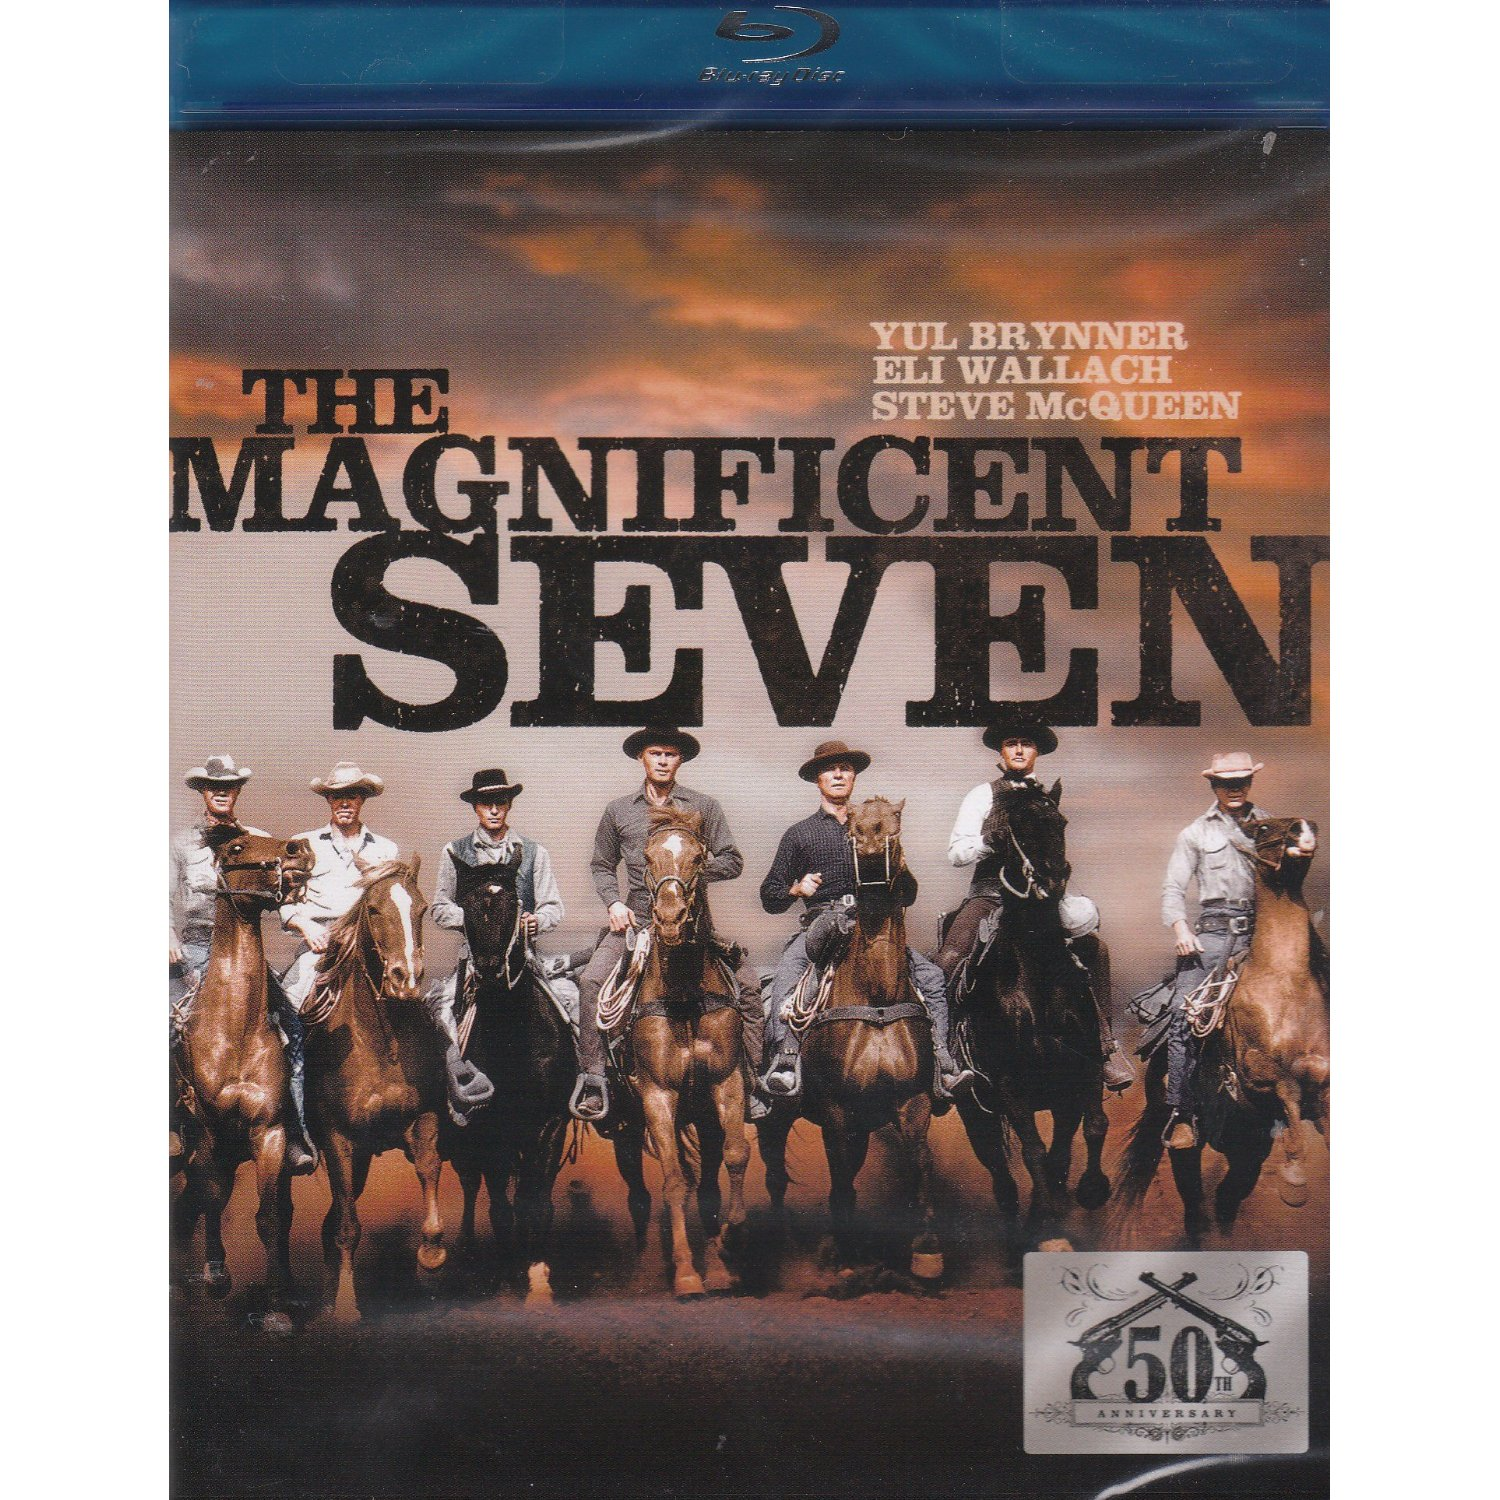 Magnificent Bluray